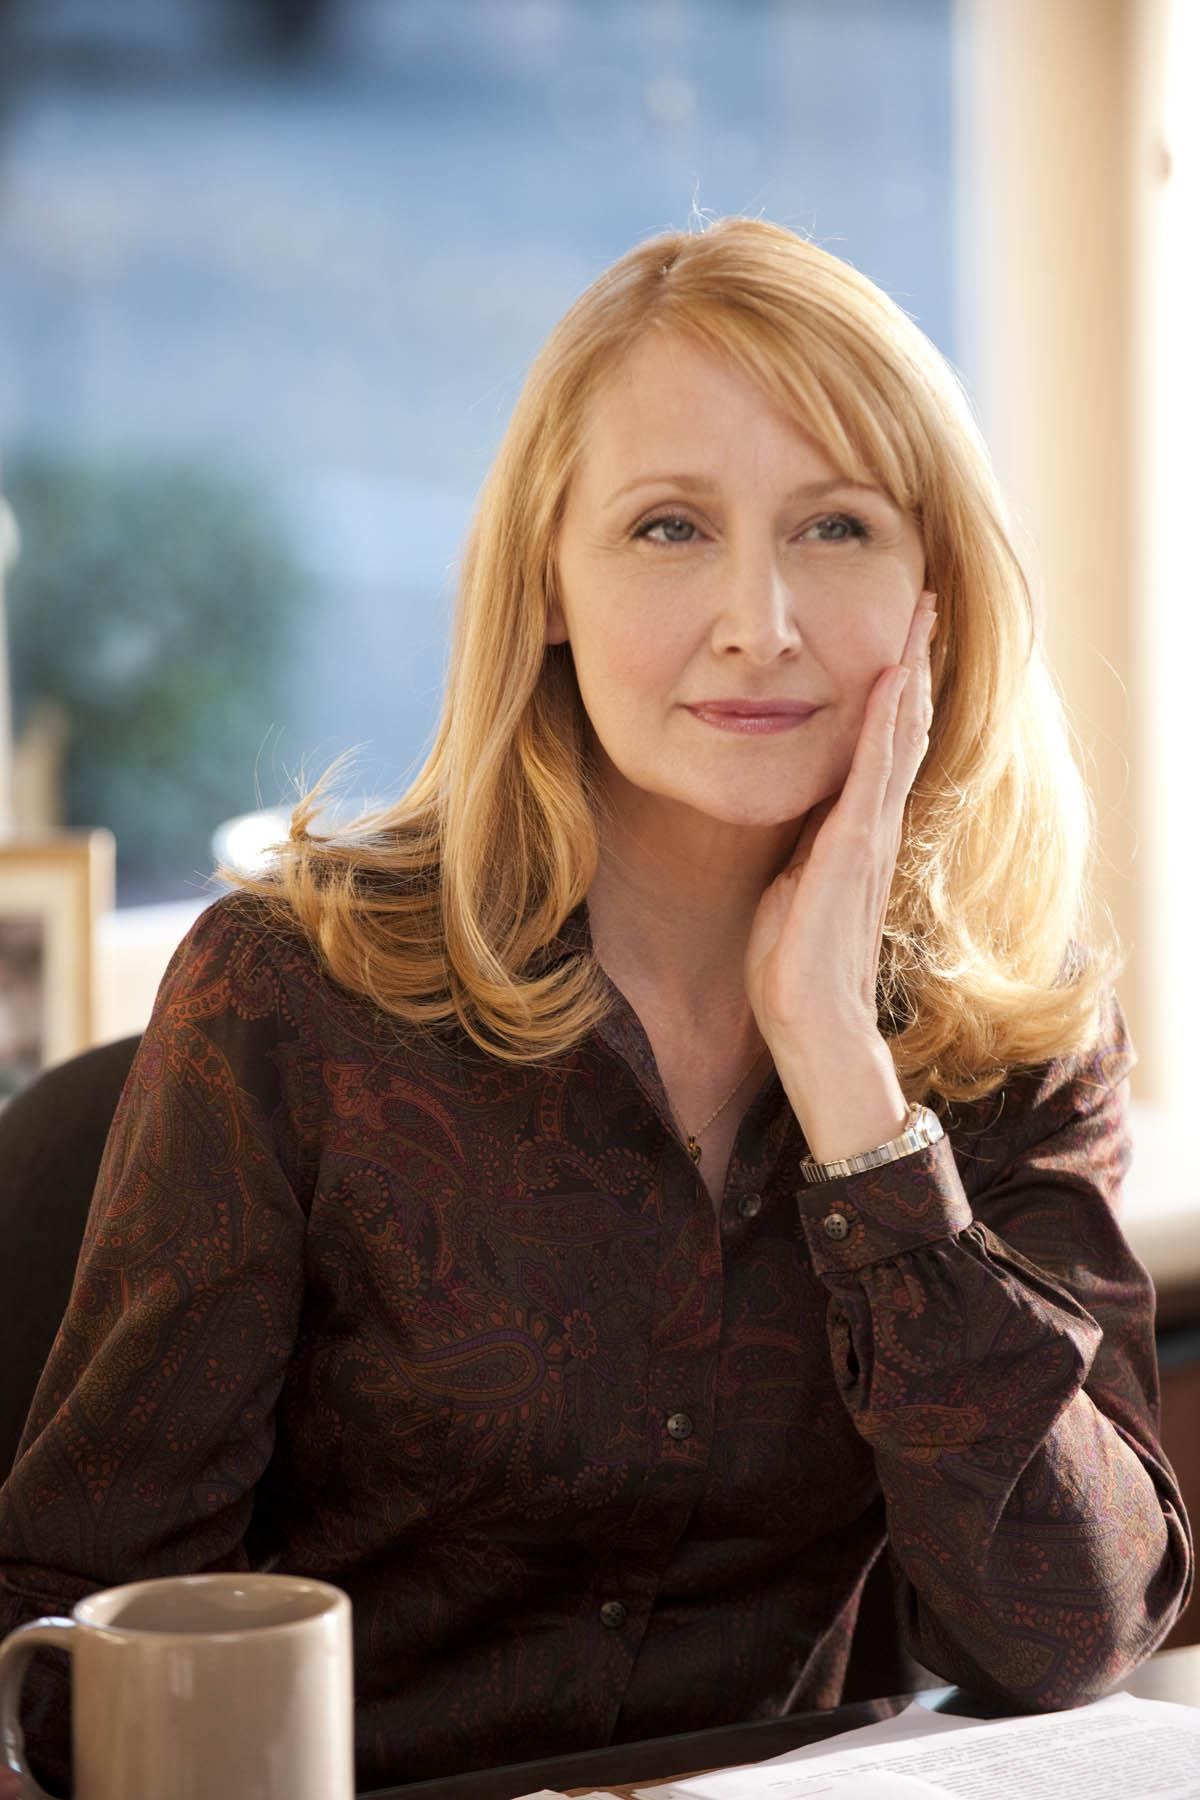 GALLERY Patricia Clarkson nude (57 pictures)